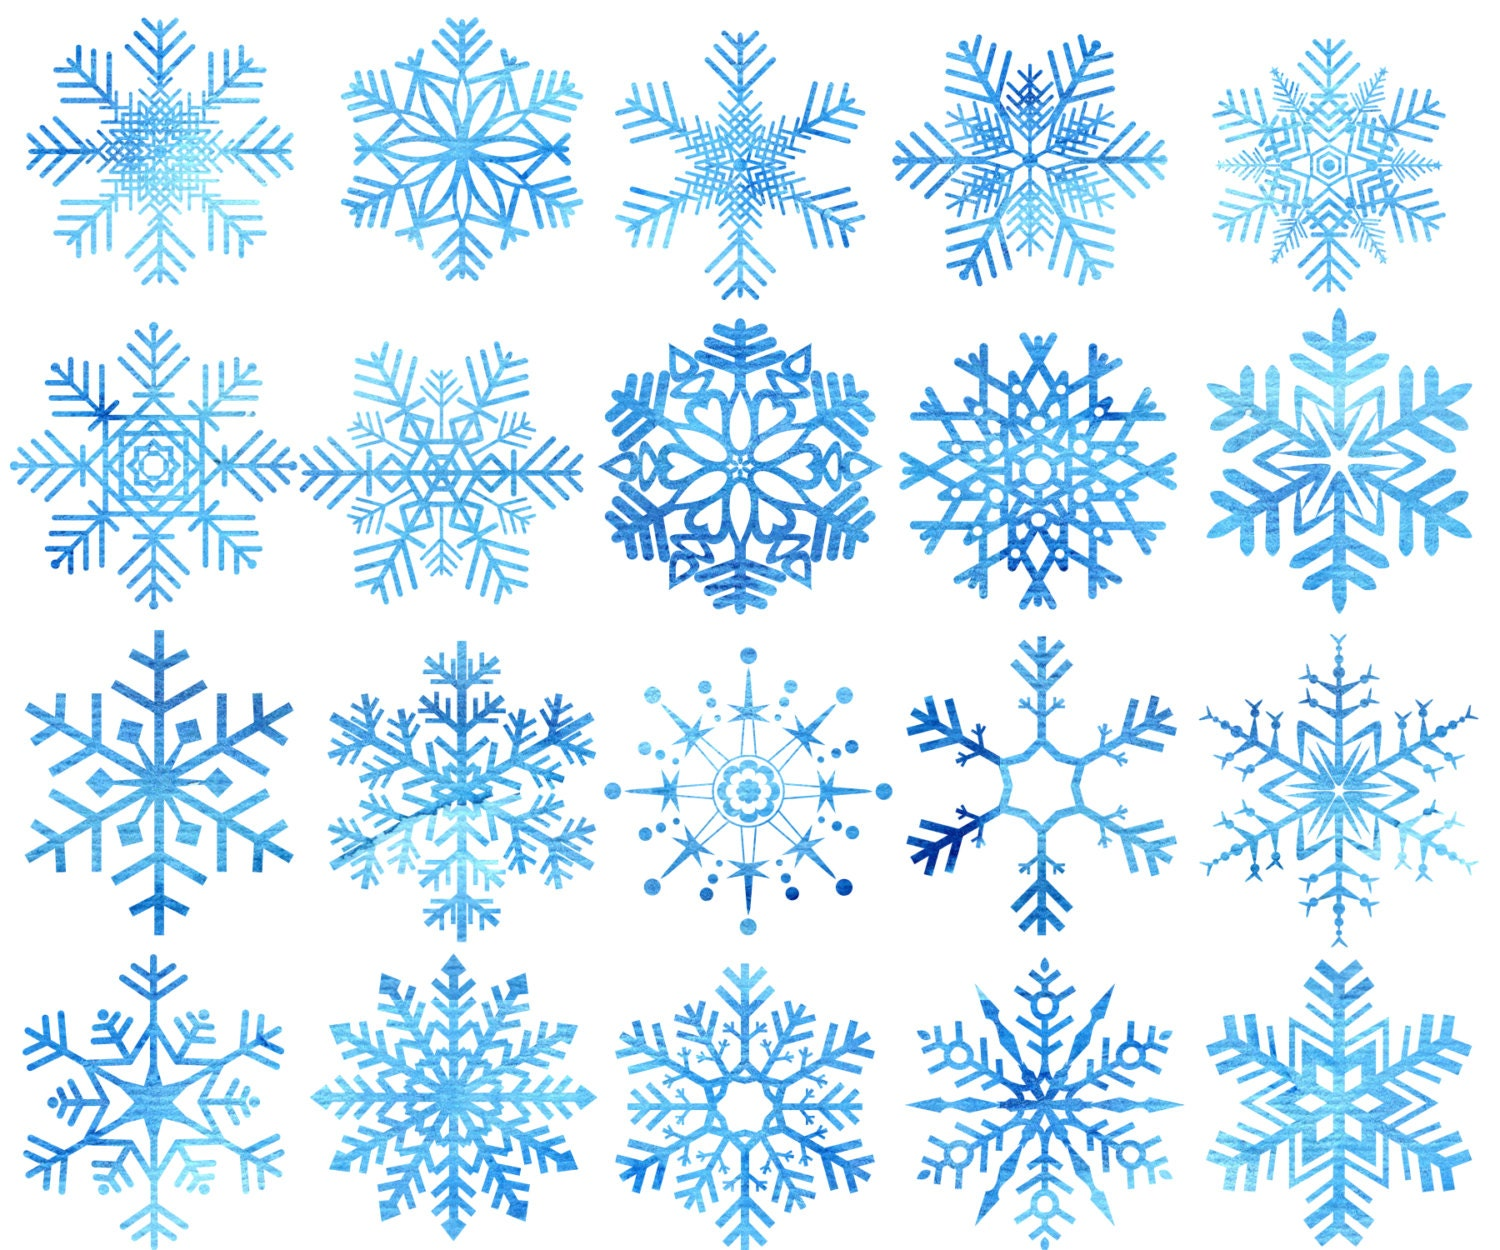 Watercolor Snowflakes Clipart: CHRISTMAS CLIP ART | Etsy